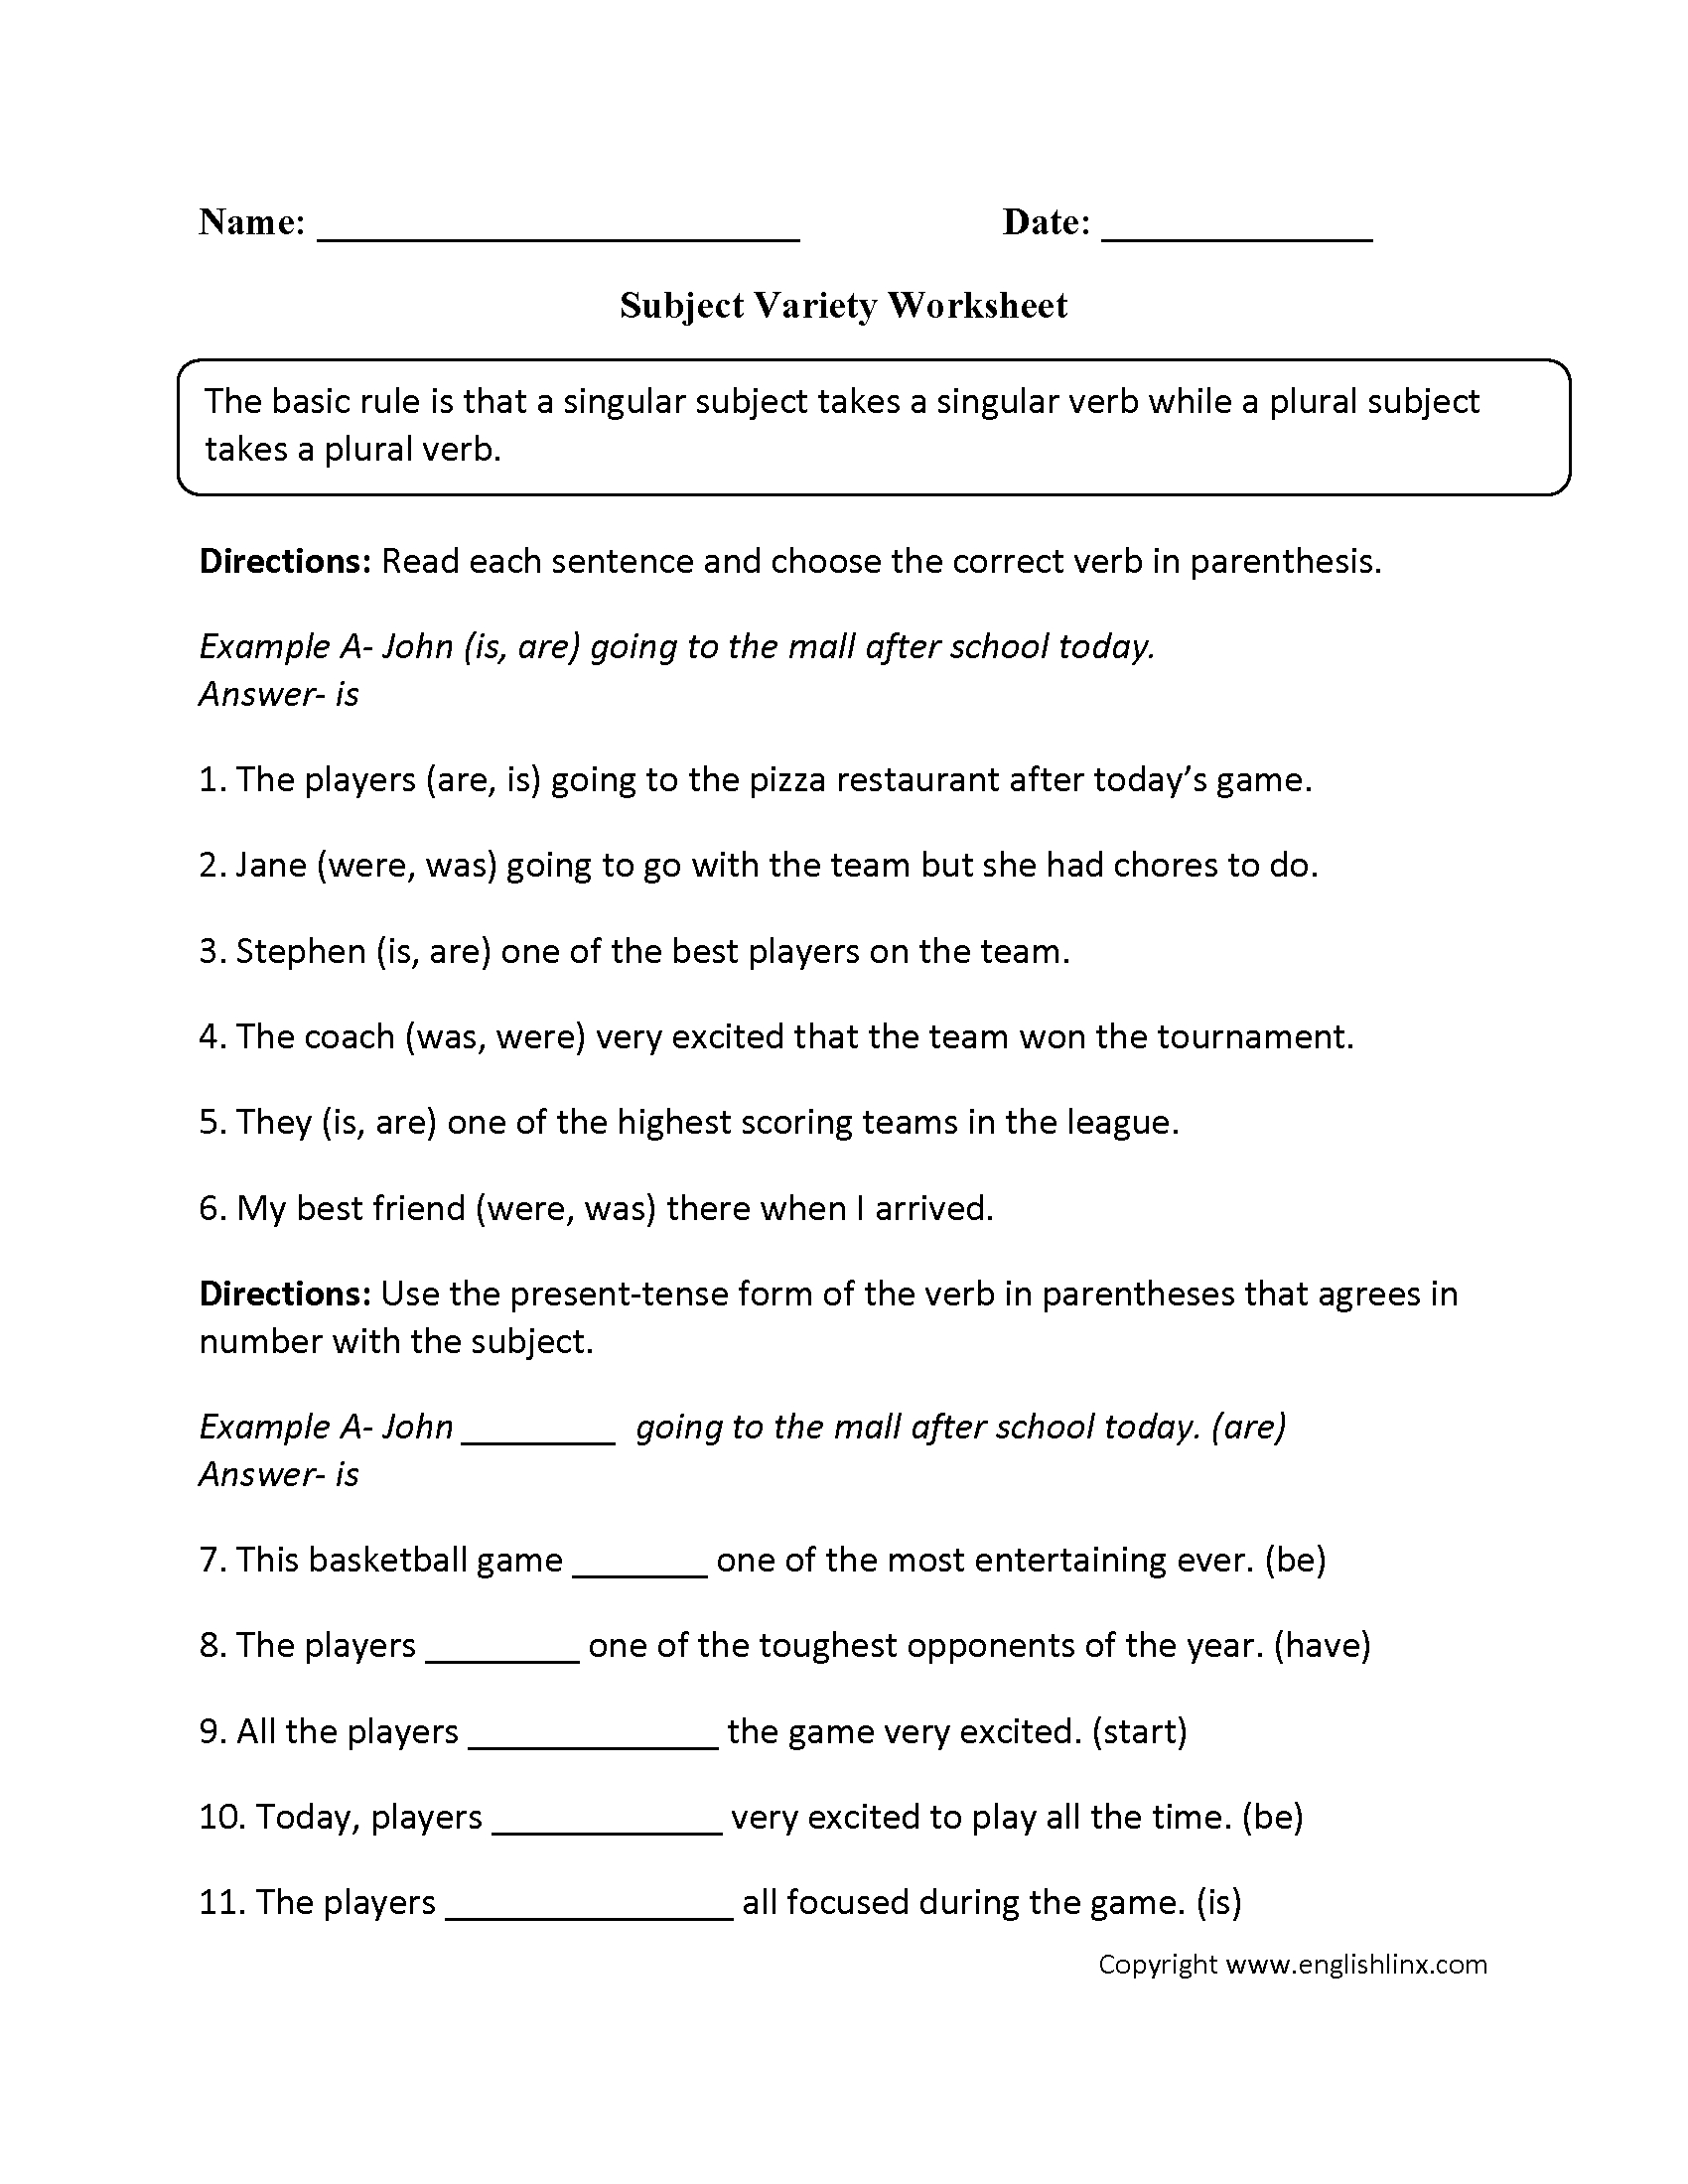 Word Usage Worksheets   Subject Verb Agreement Worksheets   Free Printable Subject Verb Agreement Worksheets